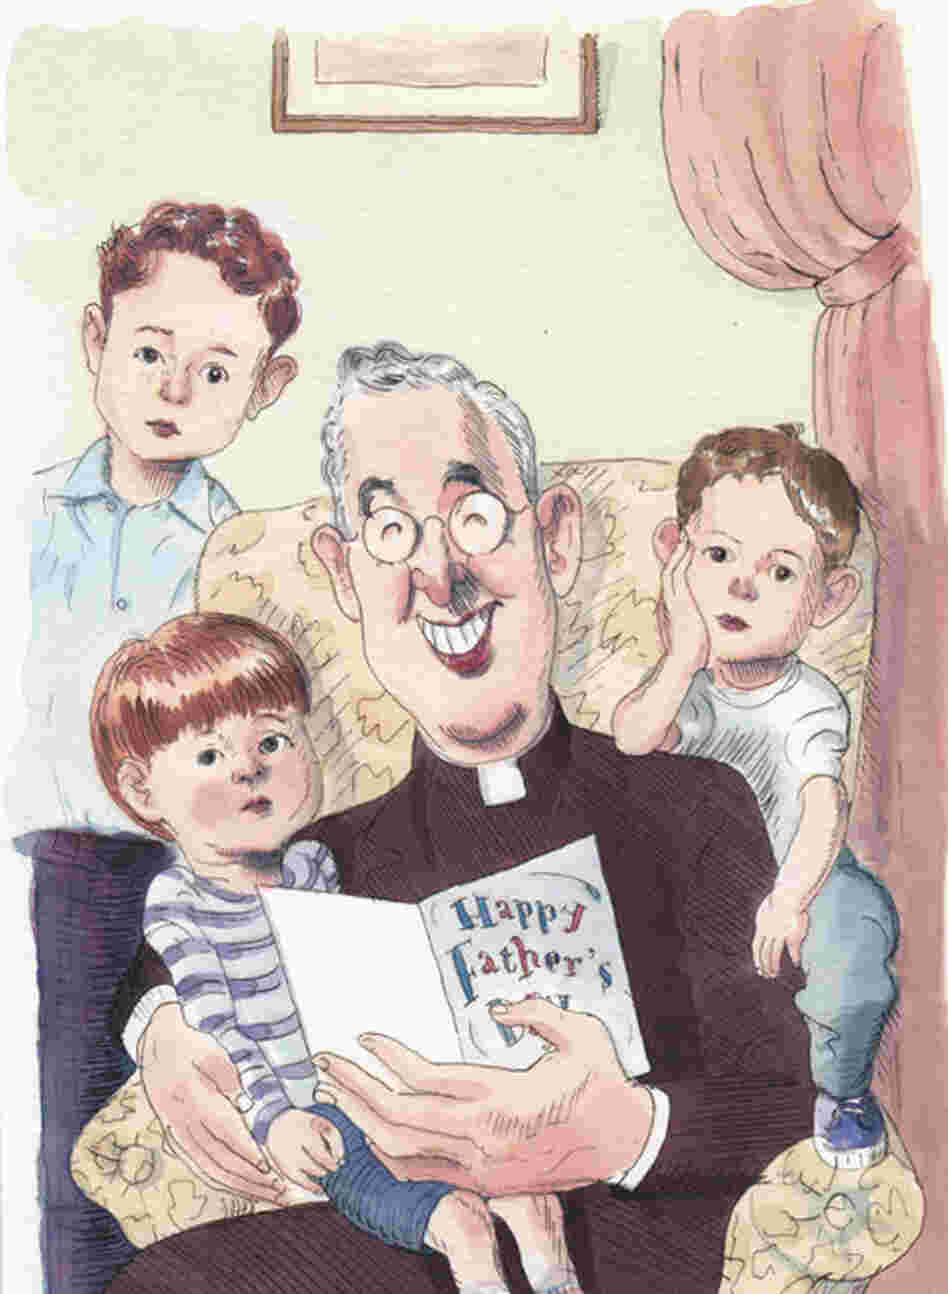 The molestation and child-abuse scandals hovering over the Catholic Church and the theme of Father's Day, a perennial one for New Yorker covers, provided Blitt with the inspiration to depict a delighted-looking priest surrounded by unsmiling cherubs.